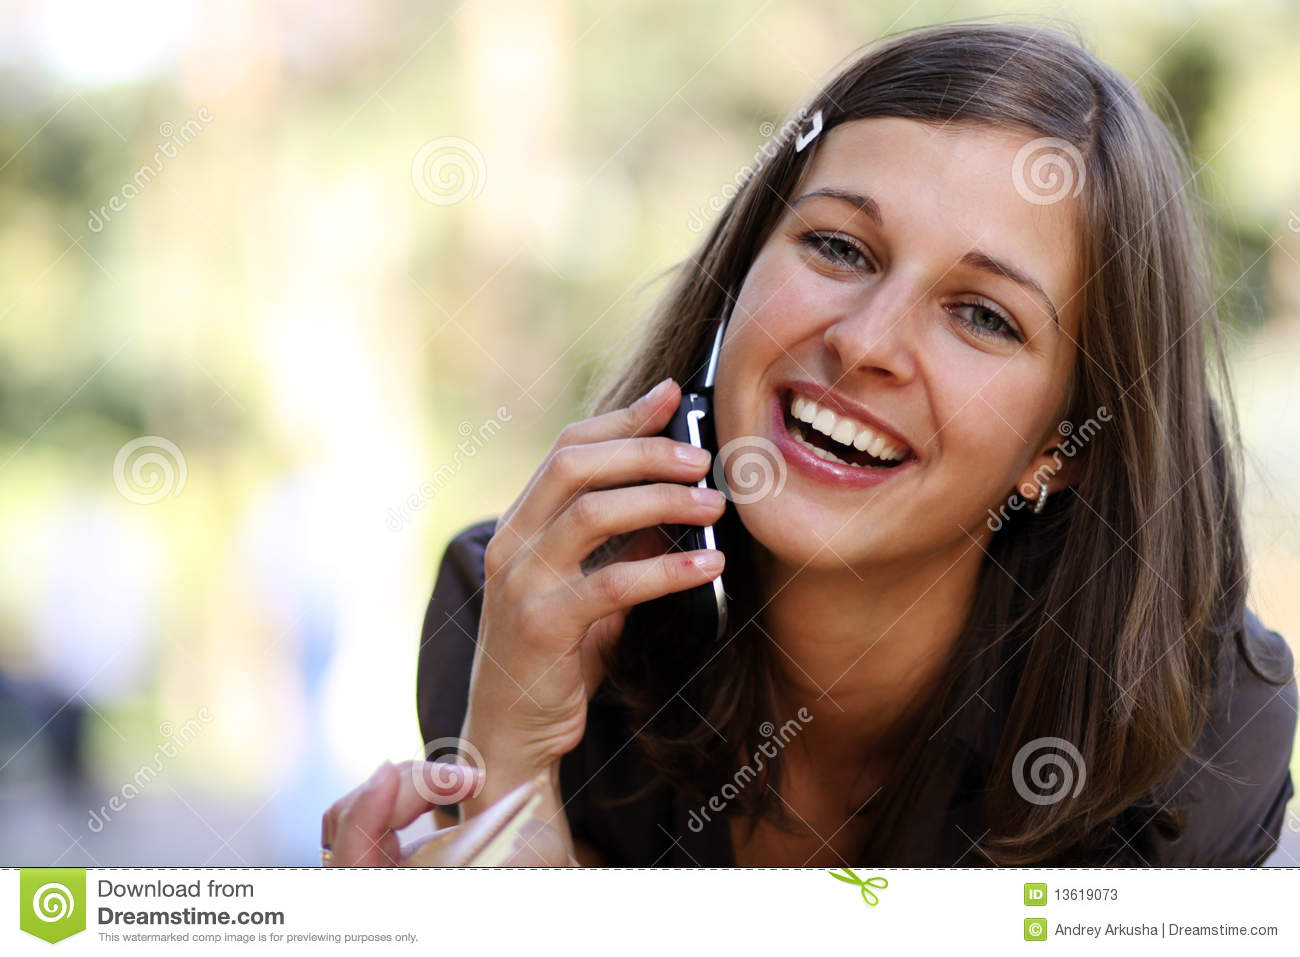 Lady Talking On Mobile Phone Stock Photos   Image  13619073